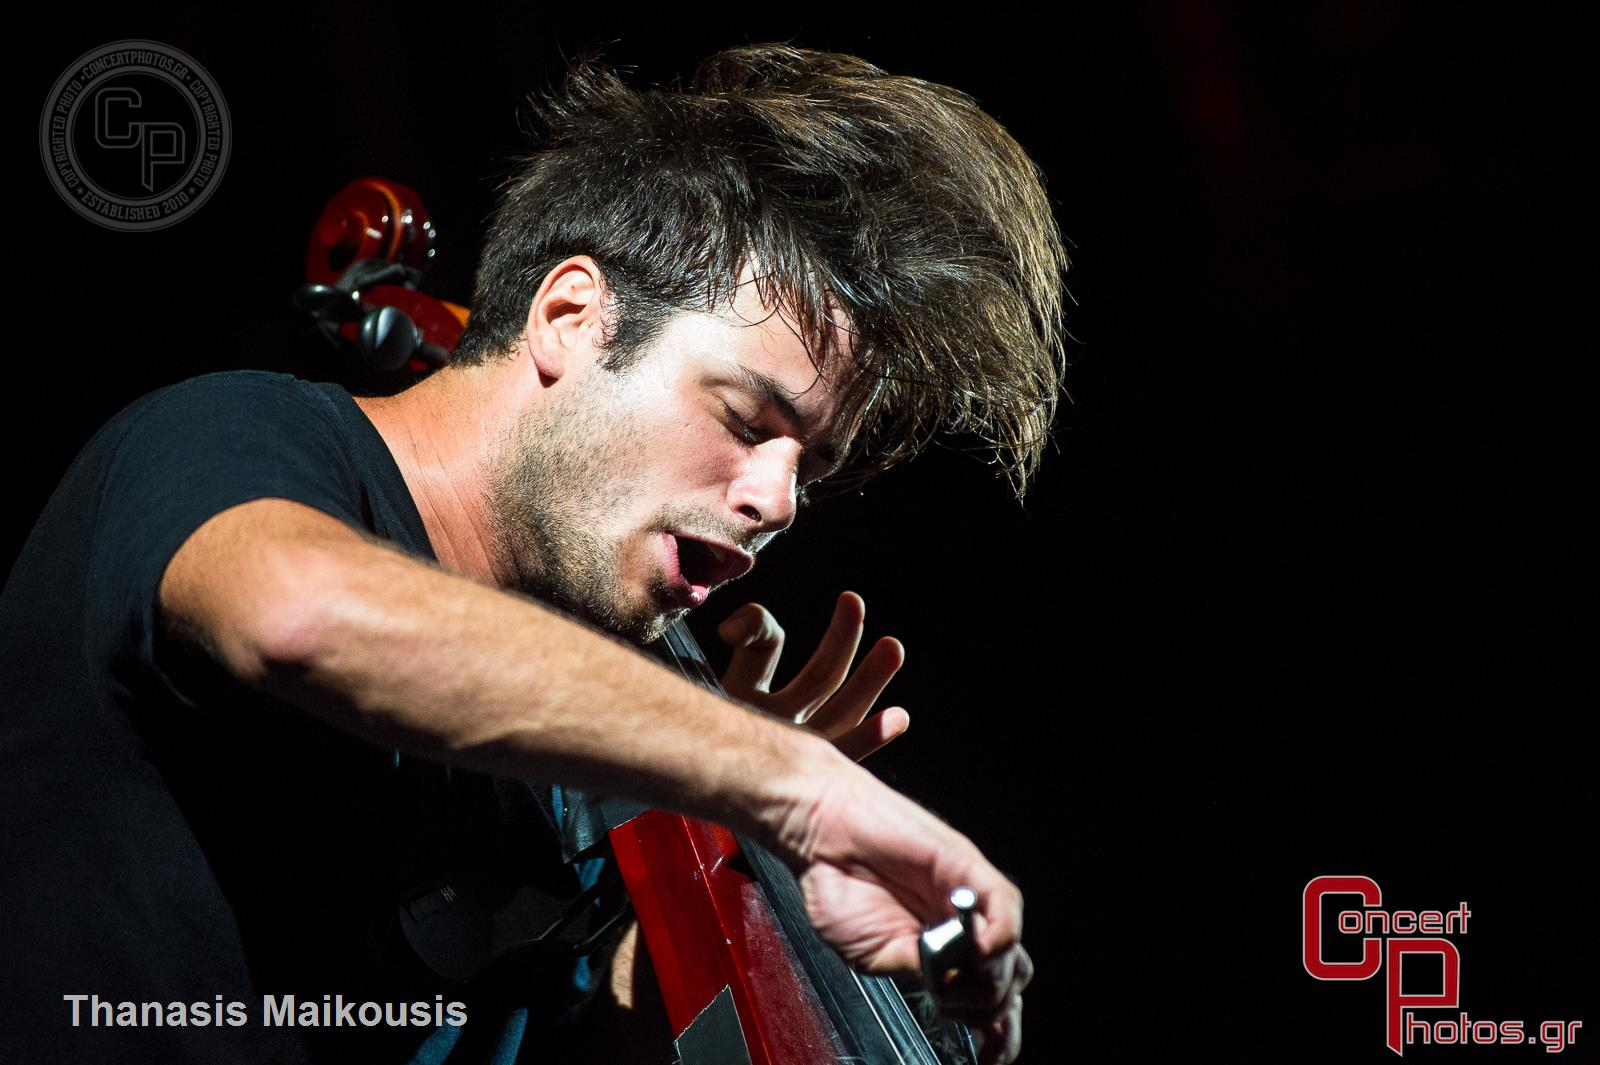 2Cellos-2Cellos Technopolis photographer: Thanasis Maikousis - untitled shoot-6323